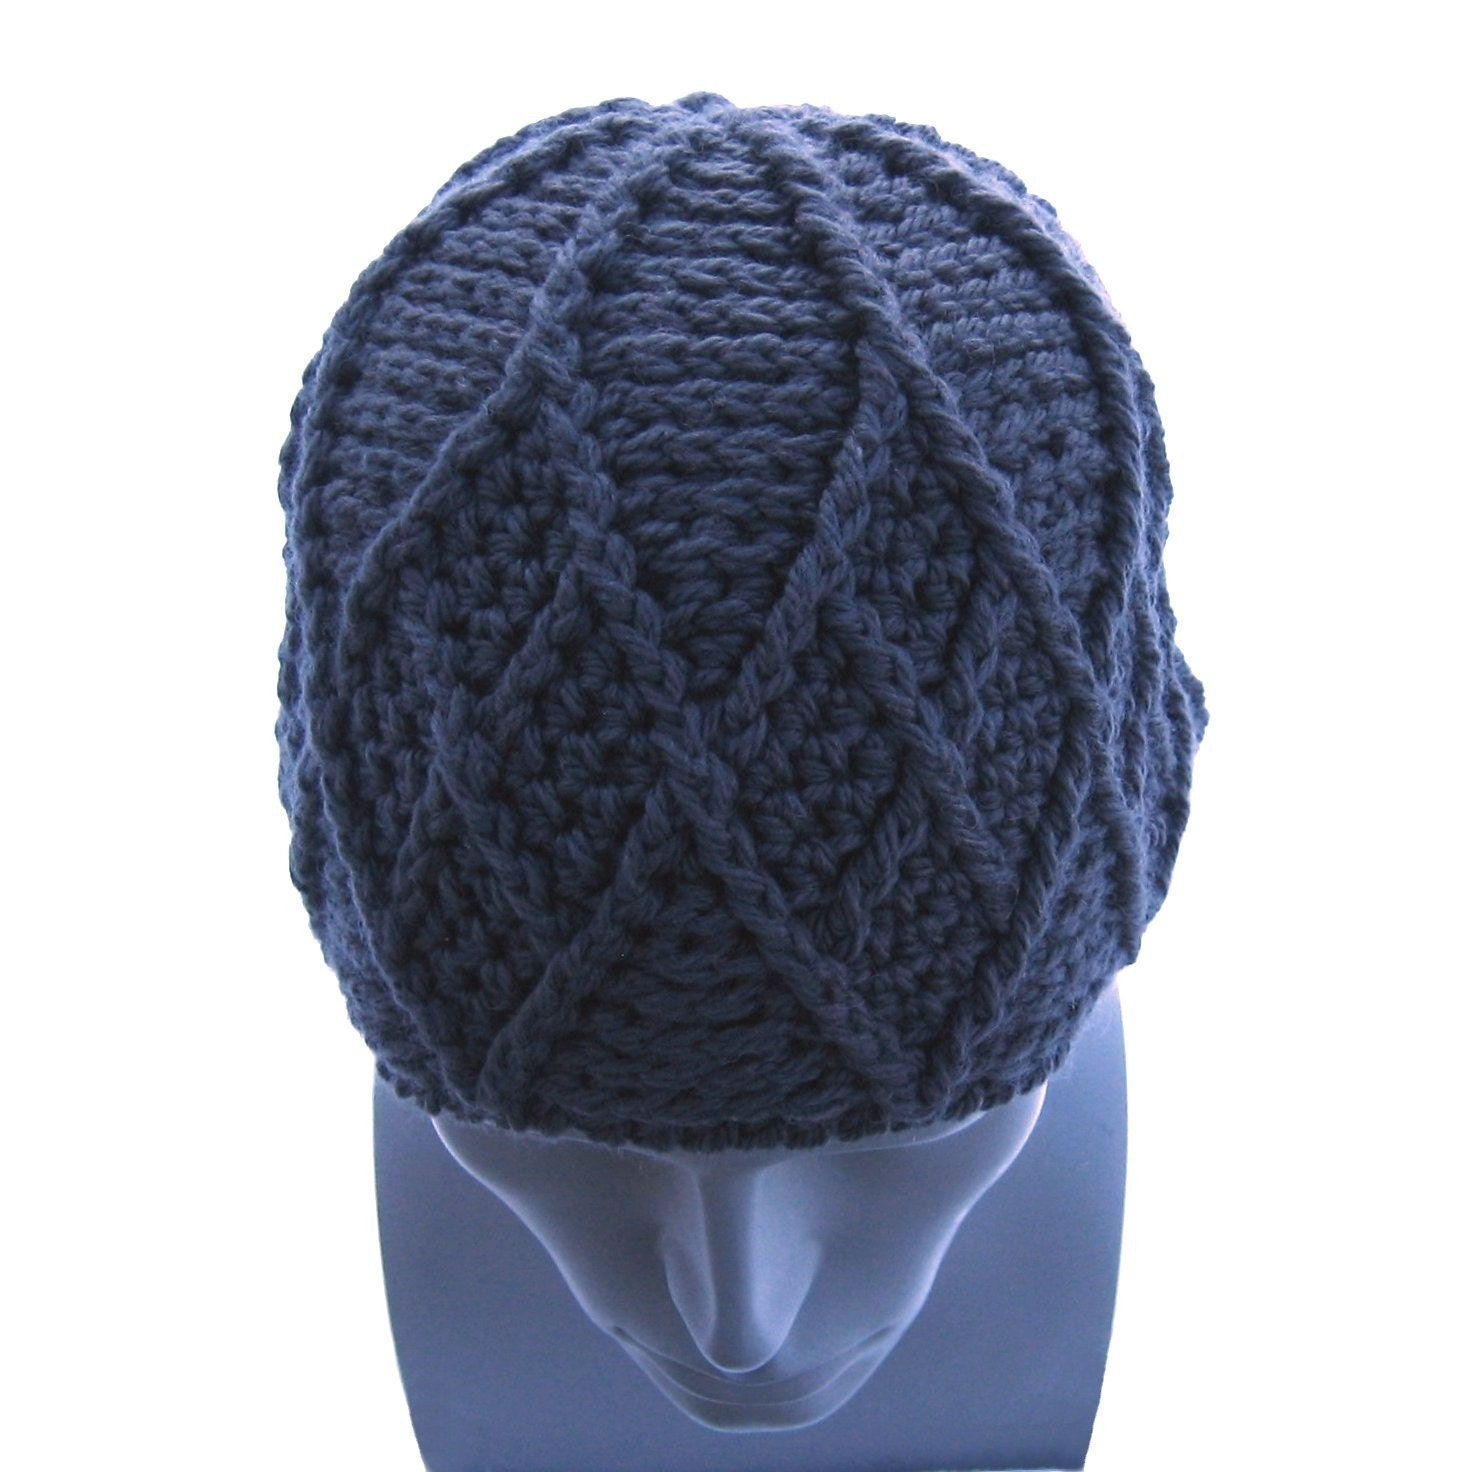 The SUPER 10 DEAL - Crochet Hat Patterns - Unbelievable Discounted Price